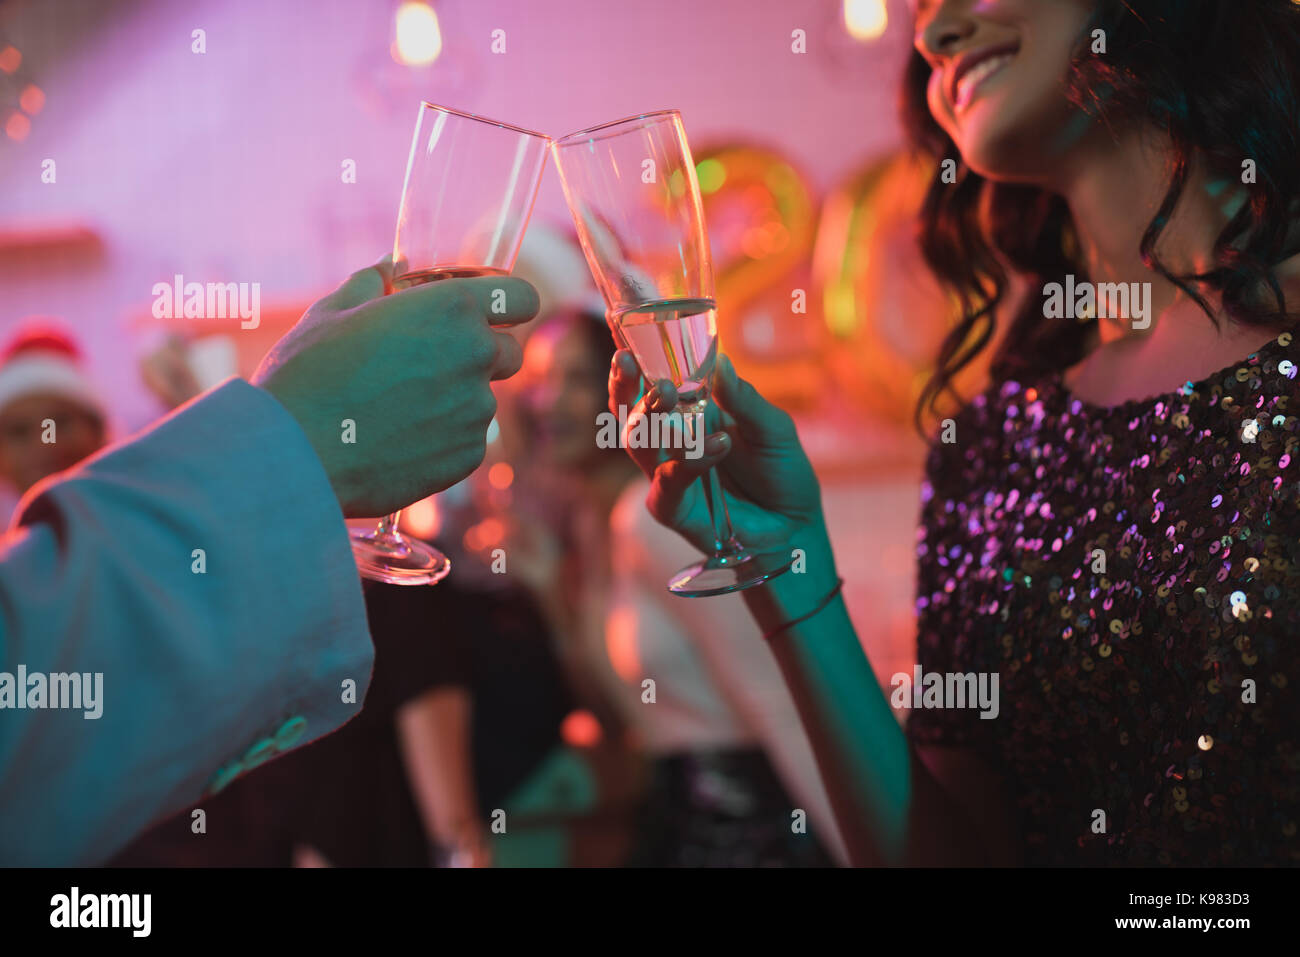 friends clinking glasses of champagne - Stock Image